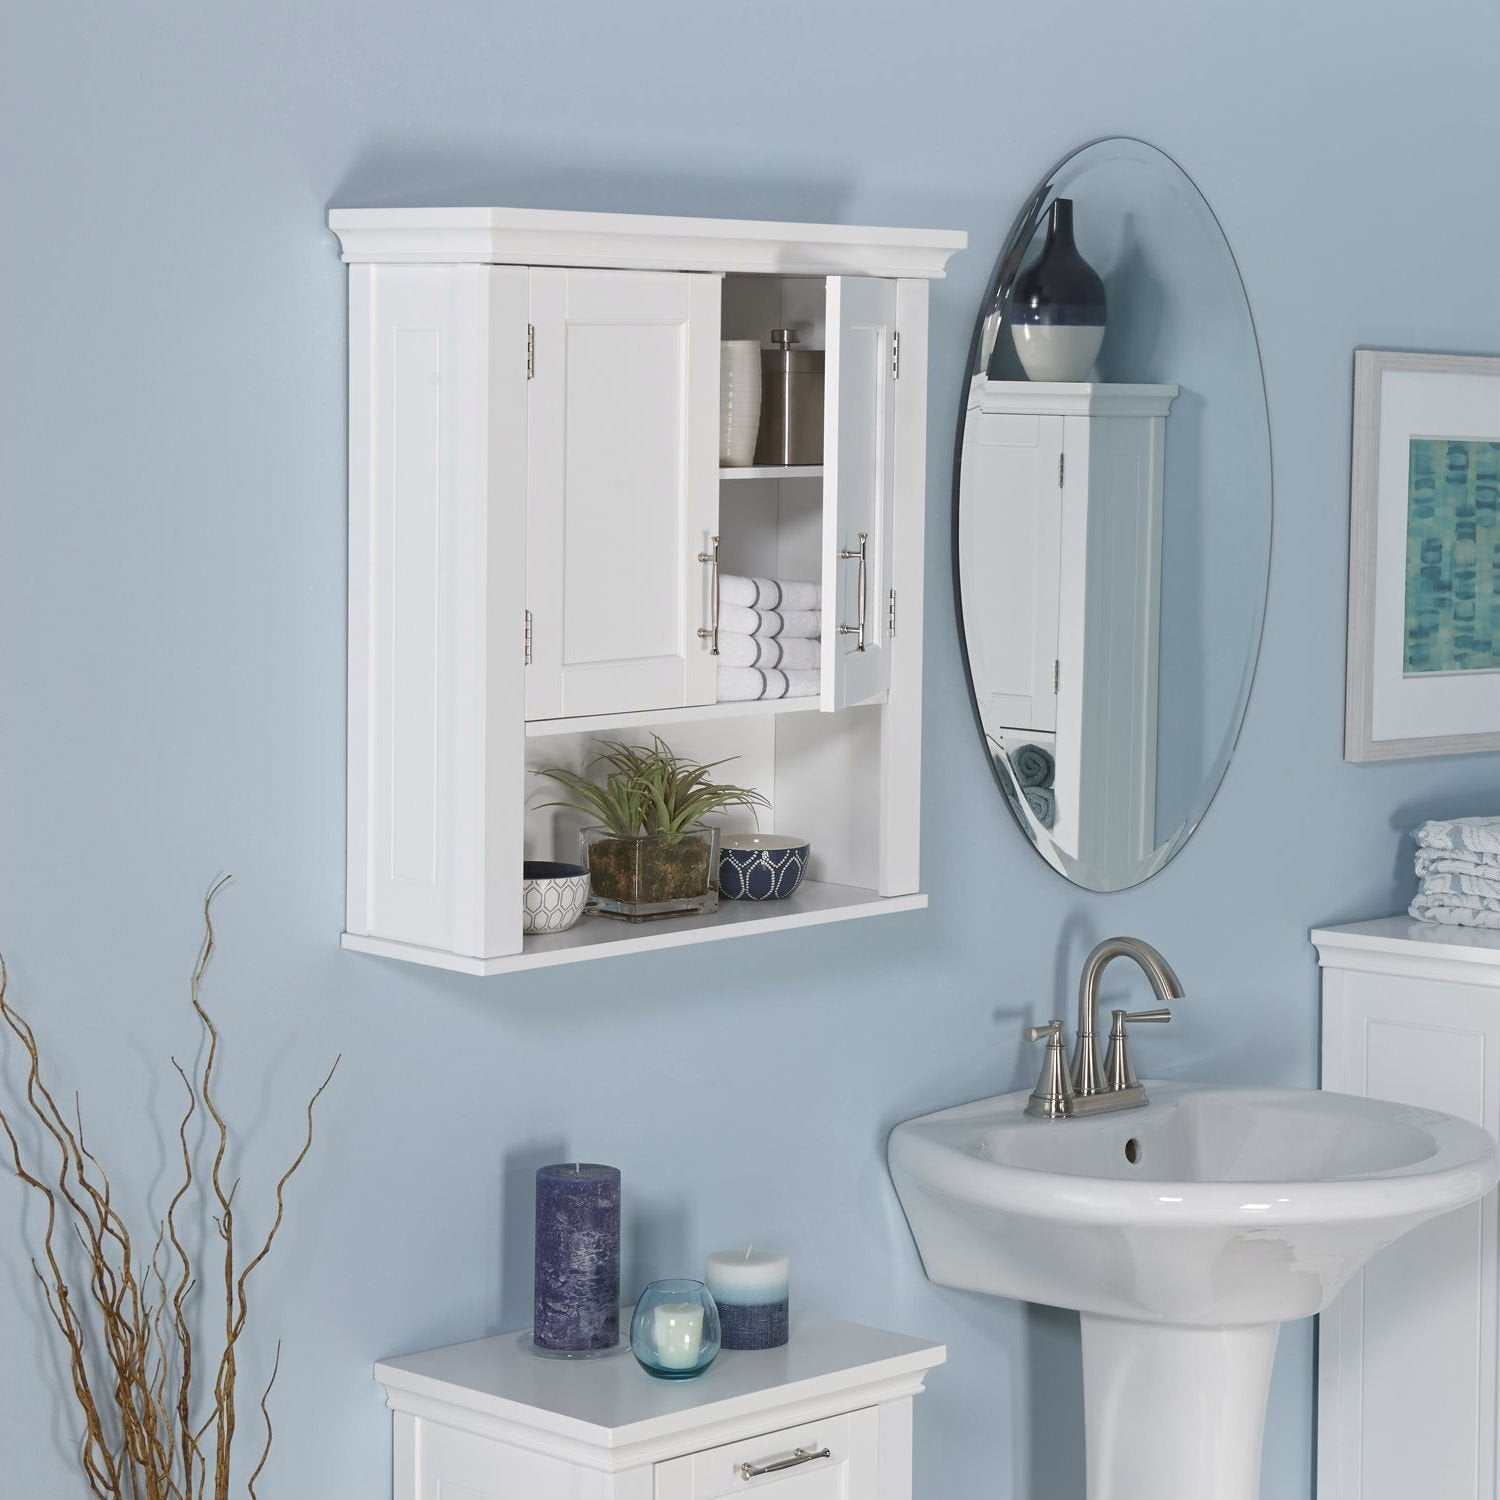 White Bathroom Wall Cabinet Cupboard with Open Shelf